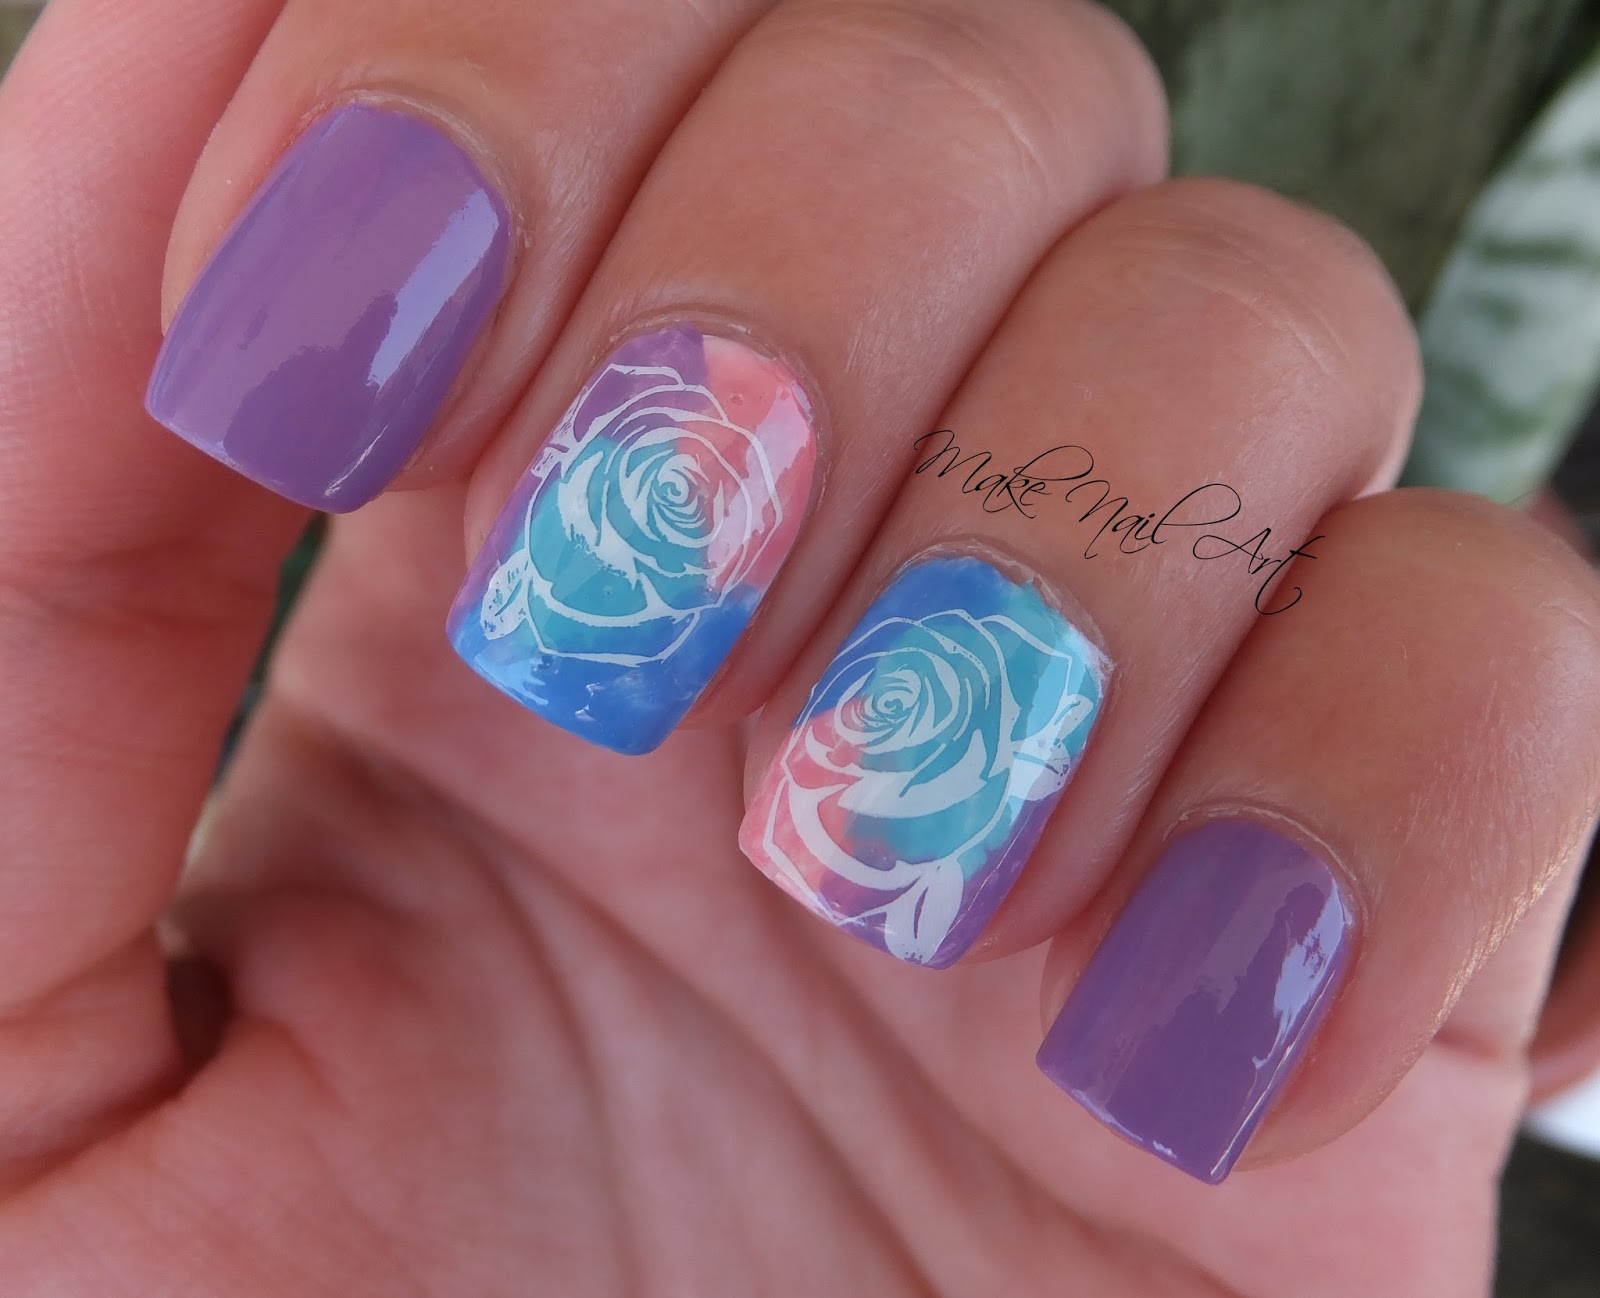 Make nail art watercolor stamping rose nail art design tutorial video tutorial prinsesfo Gallery